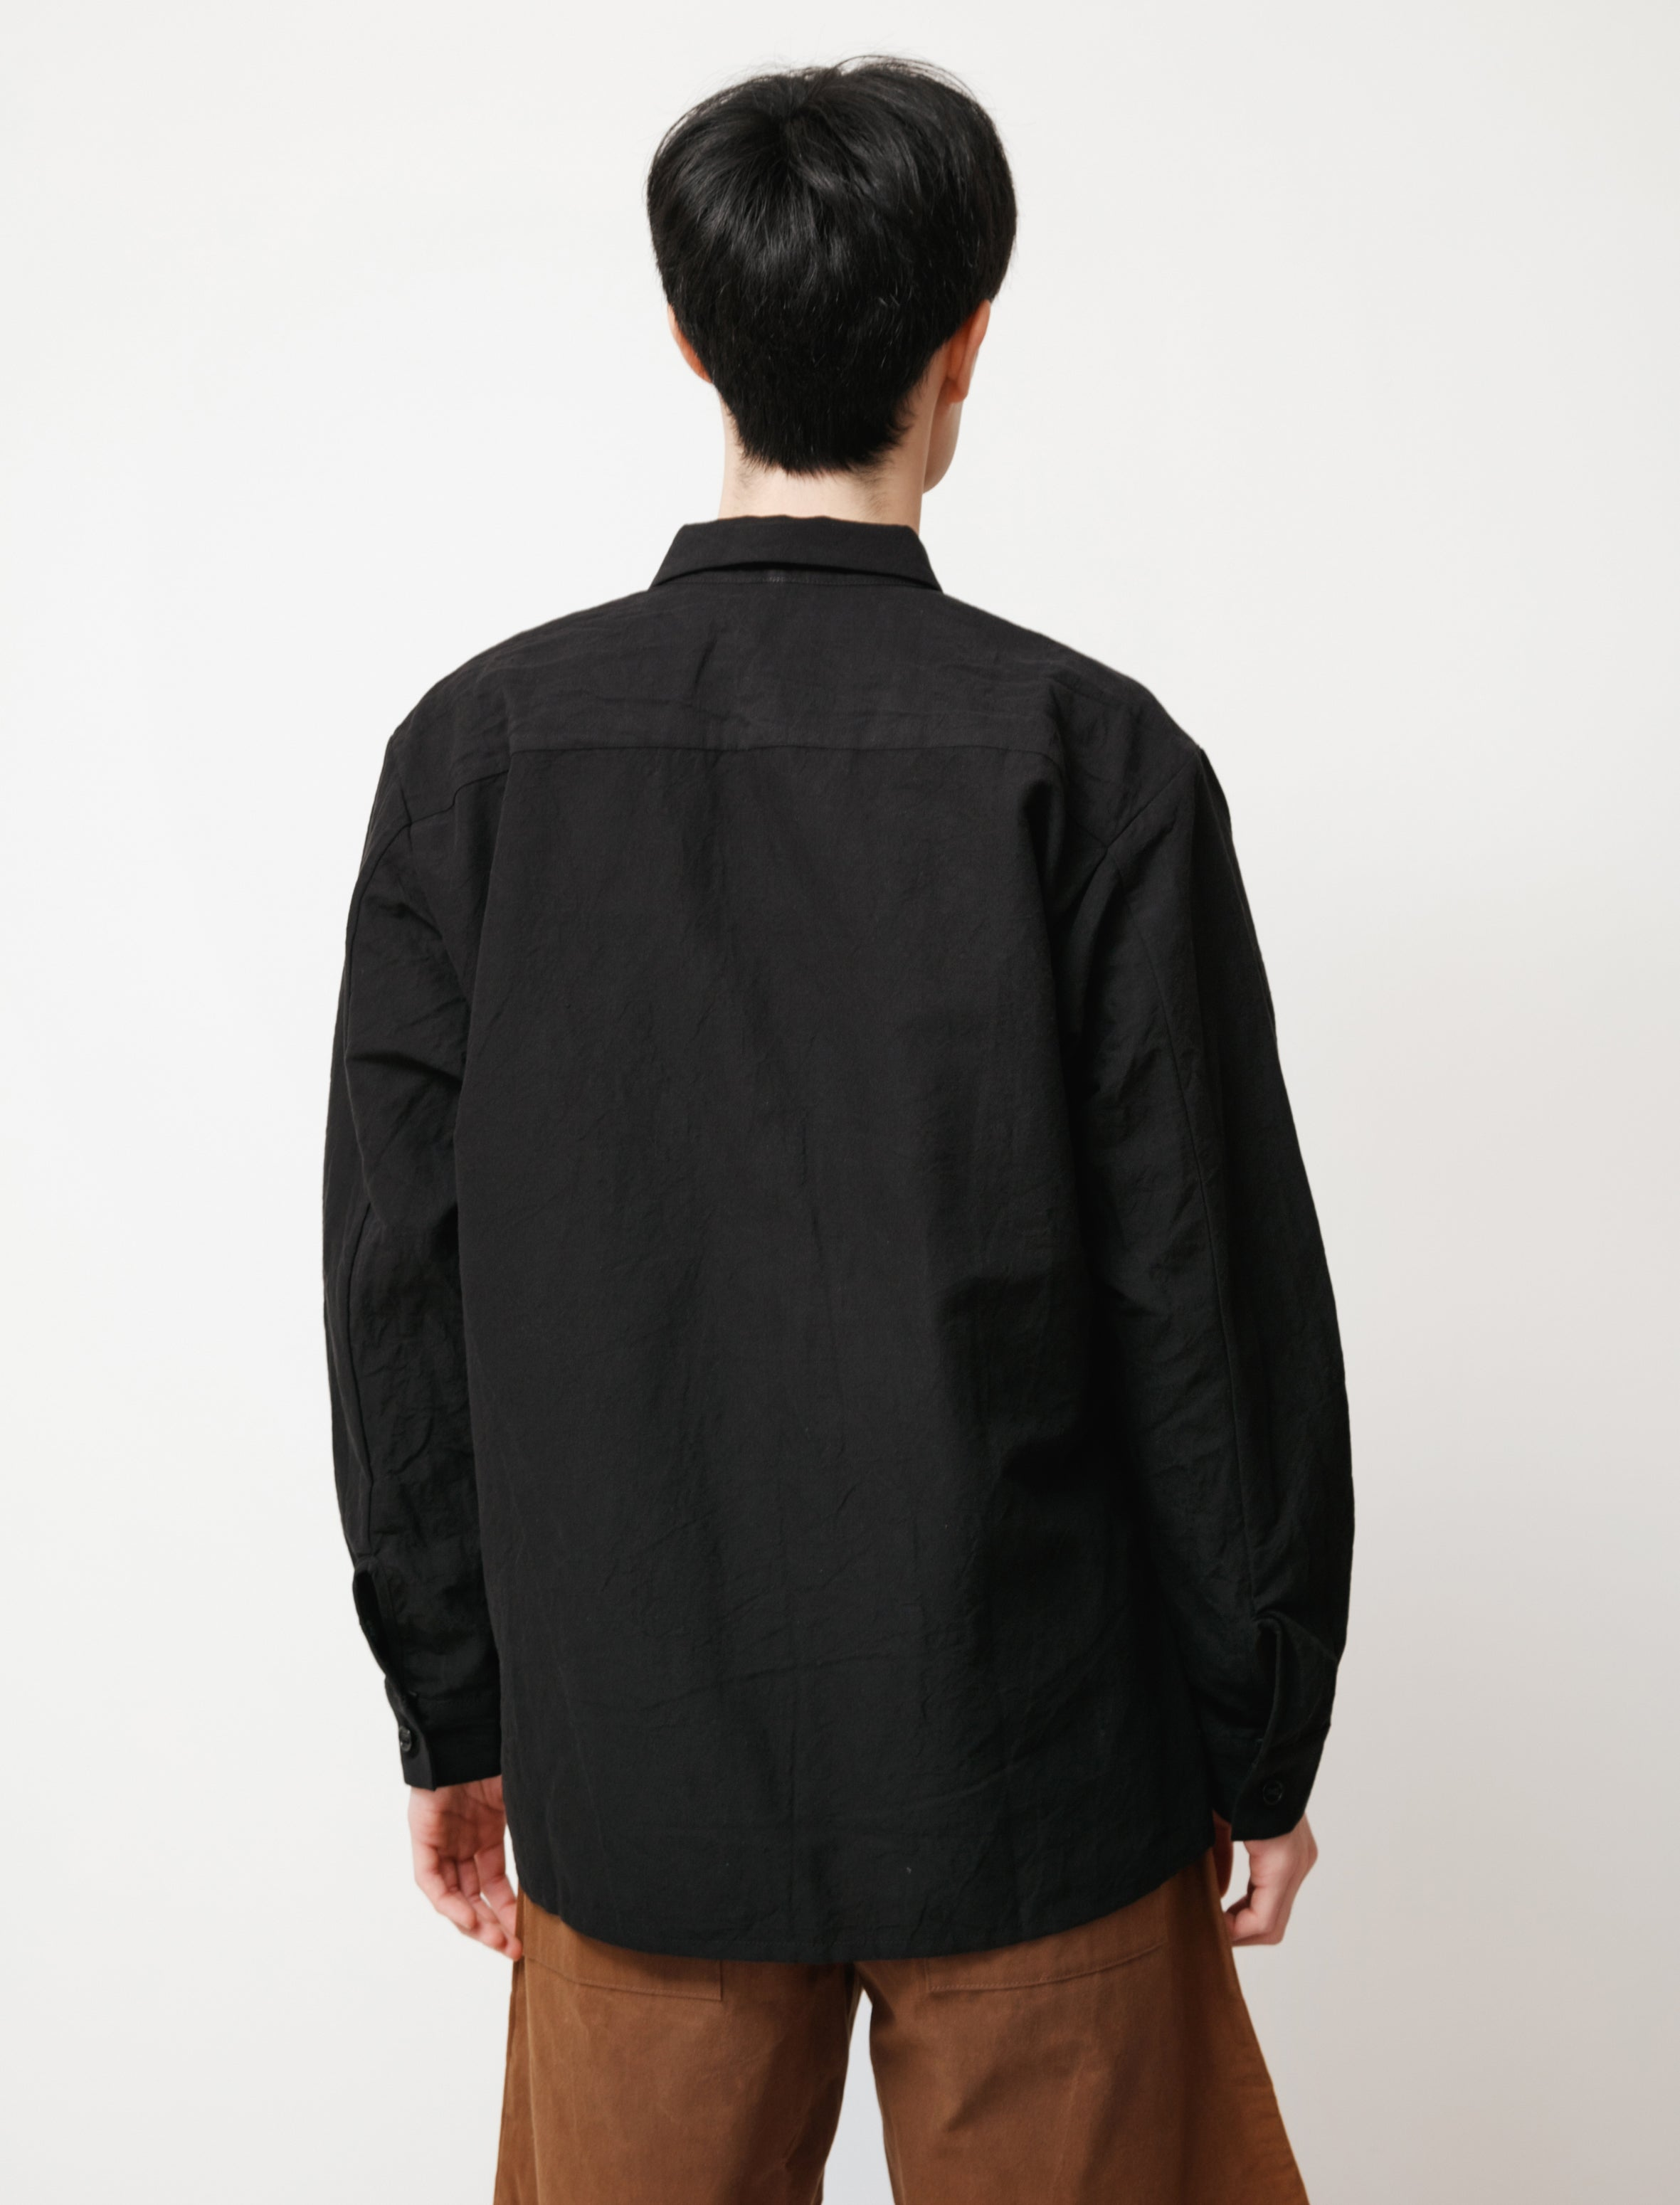 MAN-TLE R10 Shirt-1 Shade Voile